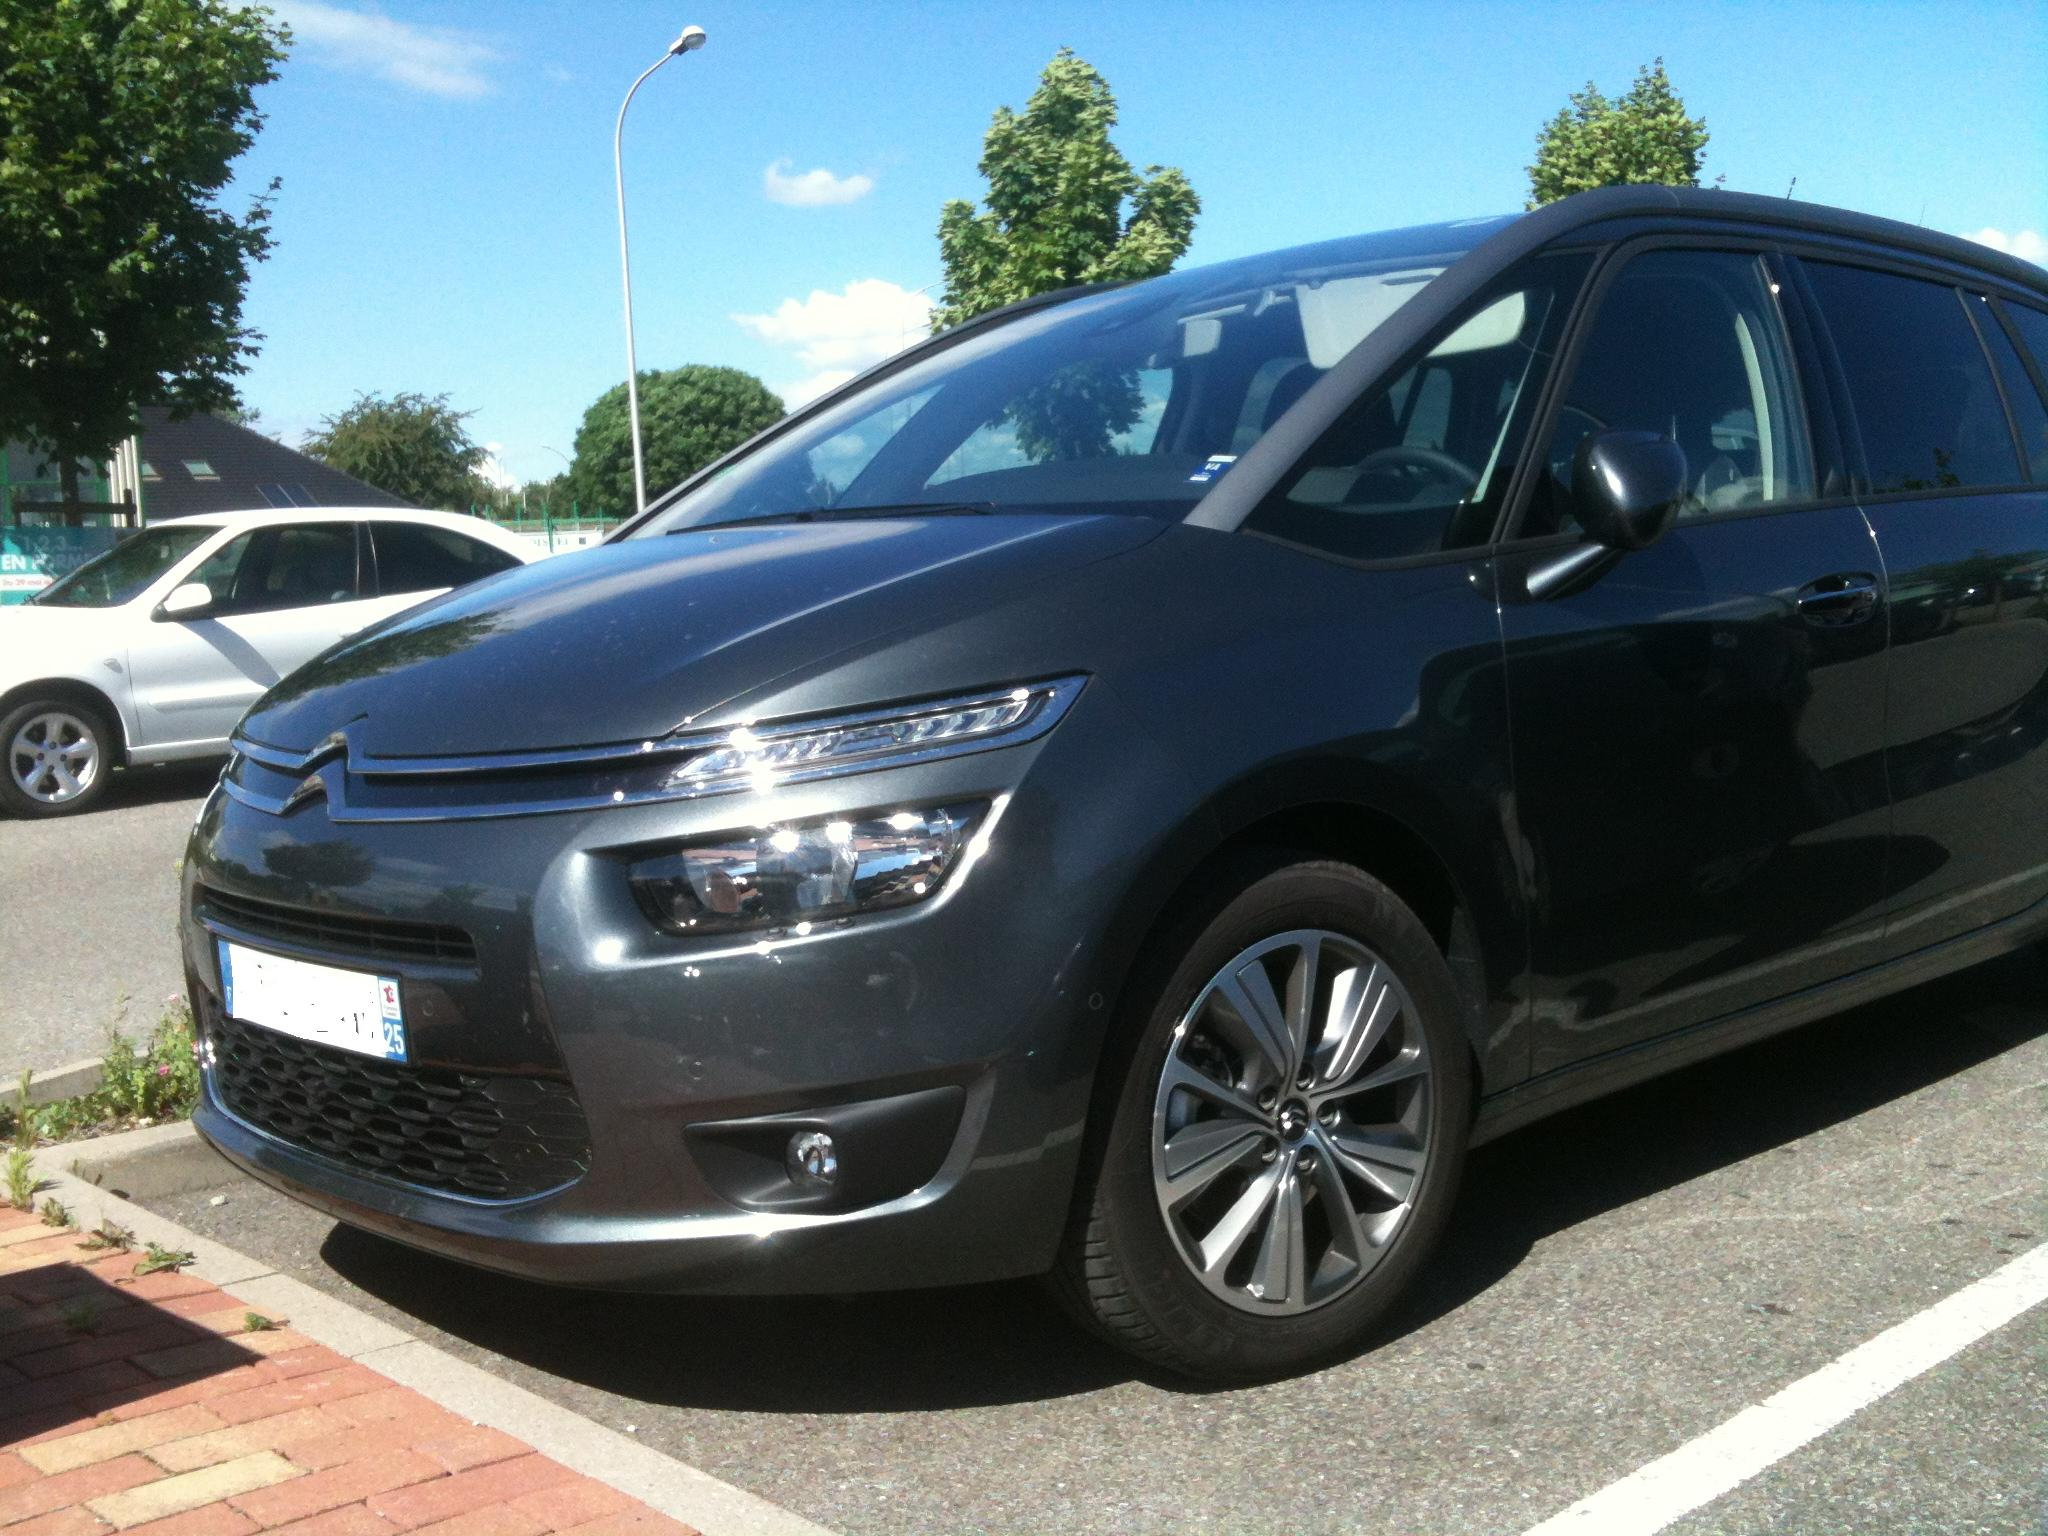 [SUJET OFFICIEL] Citroën Grand C4 Picasso II  - Page 3 942443IMG2607